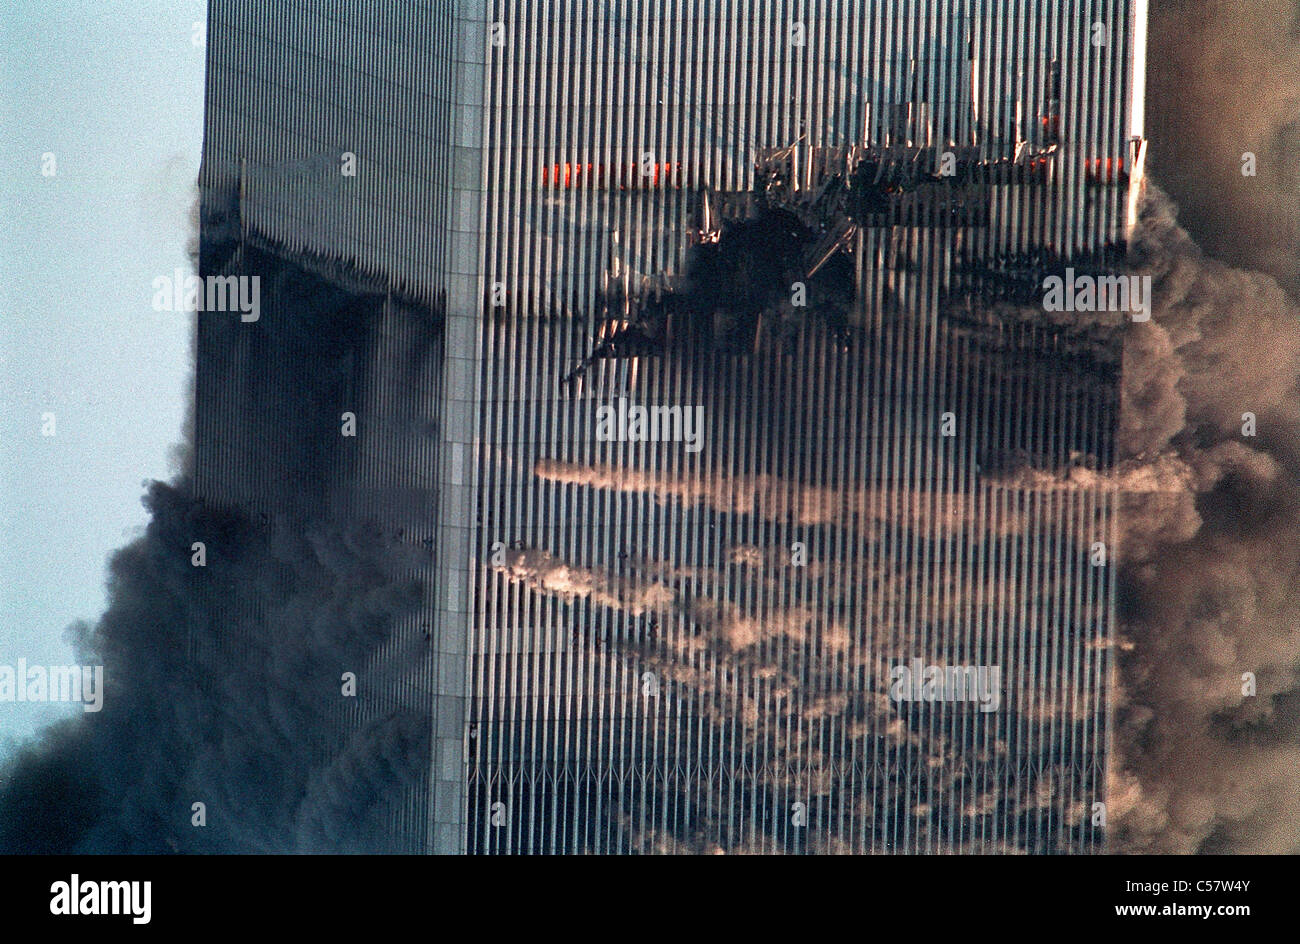 world trade center new york city terrorist attack september 11